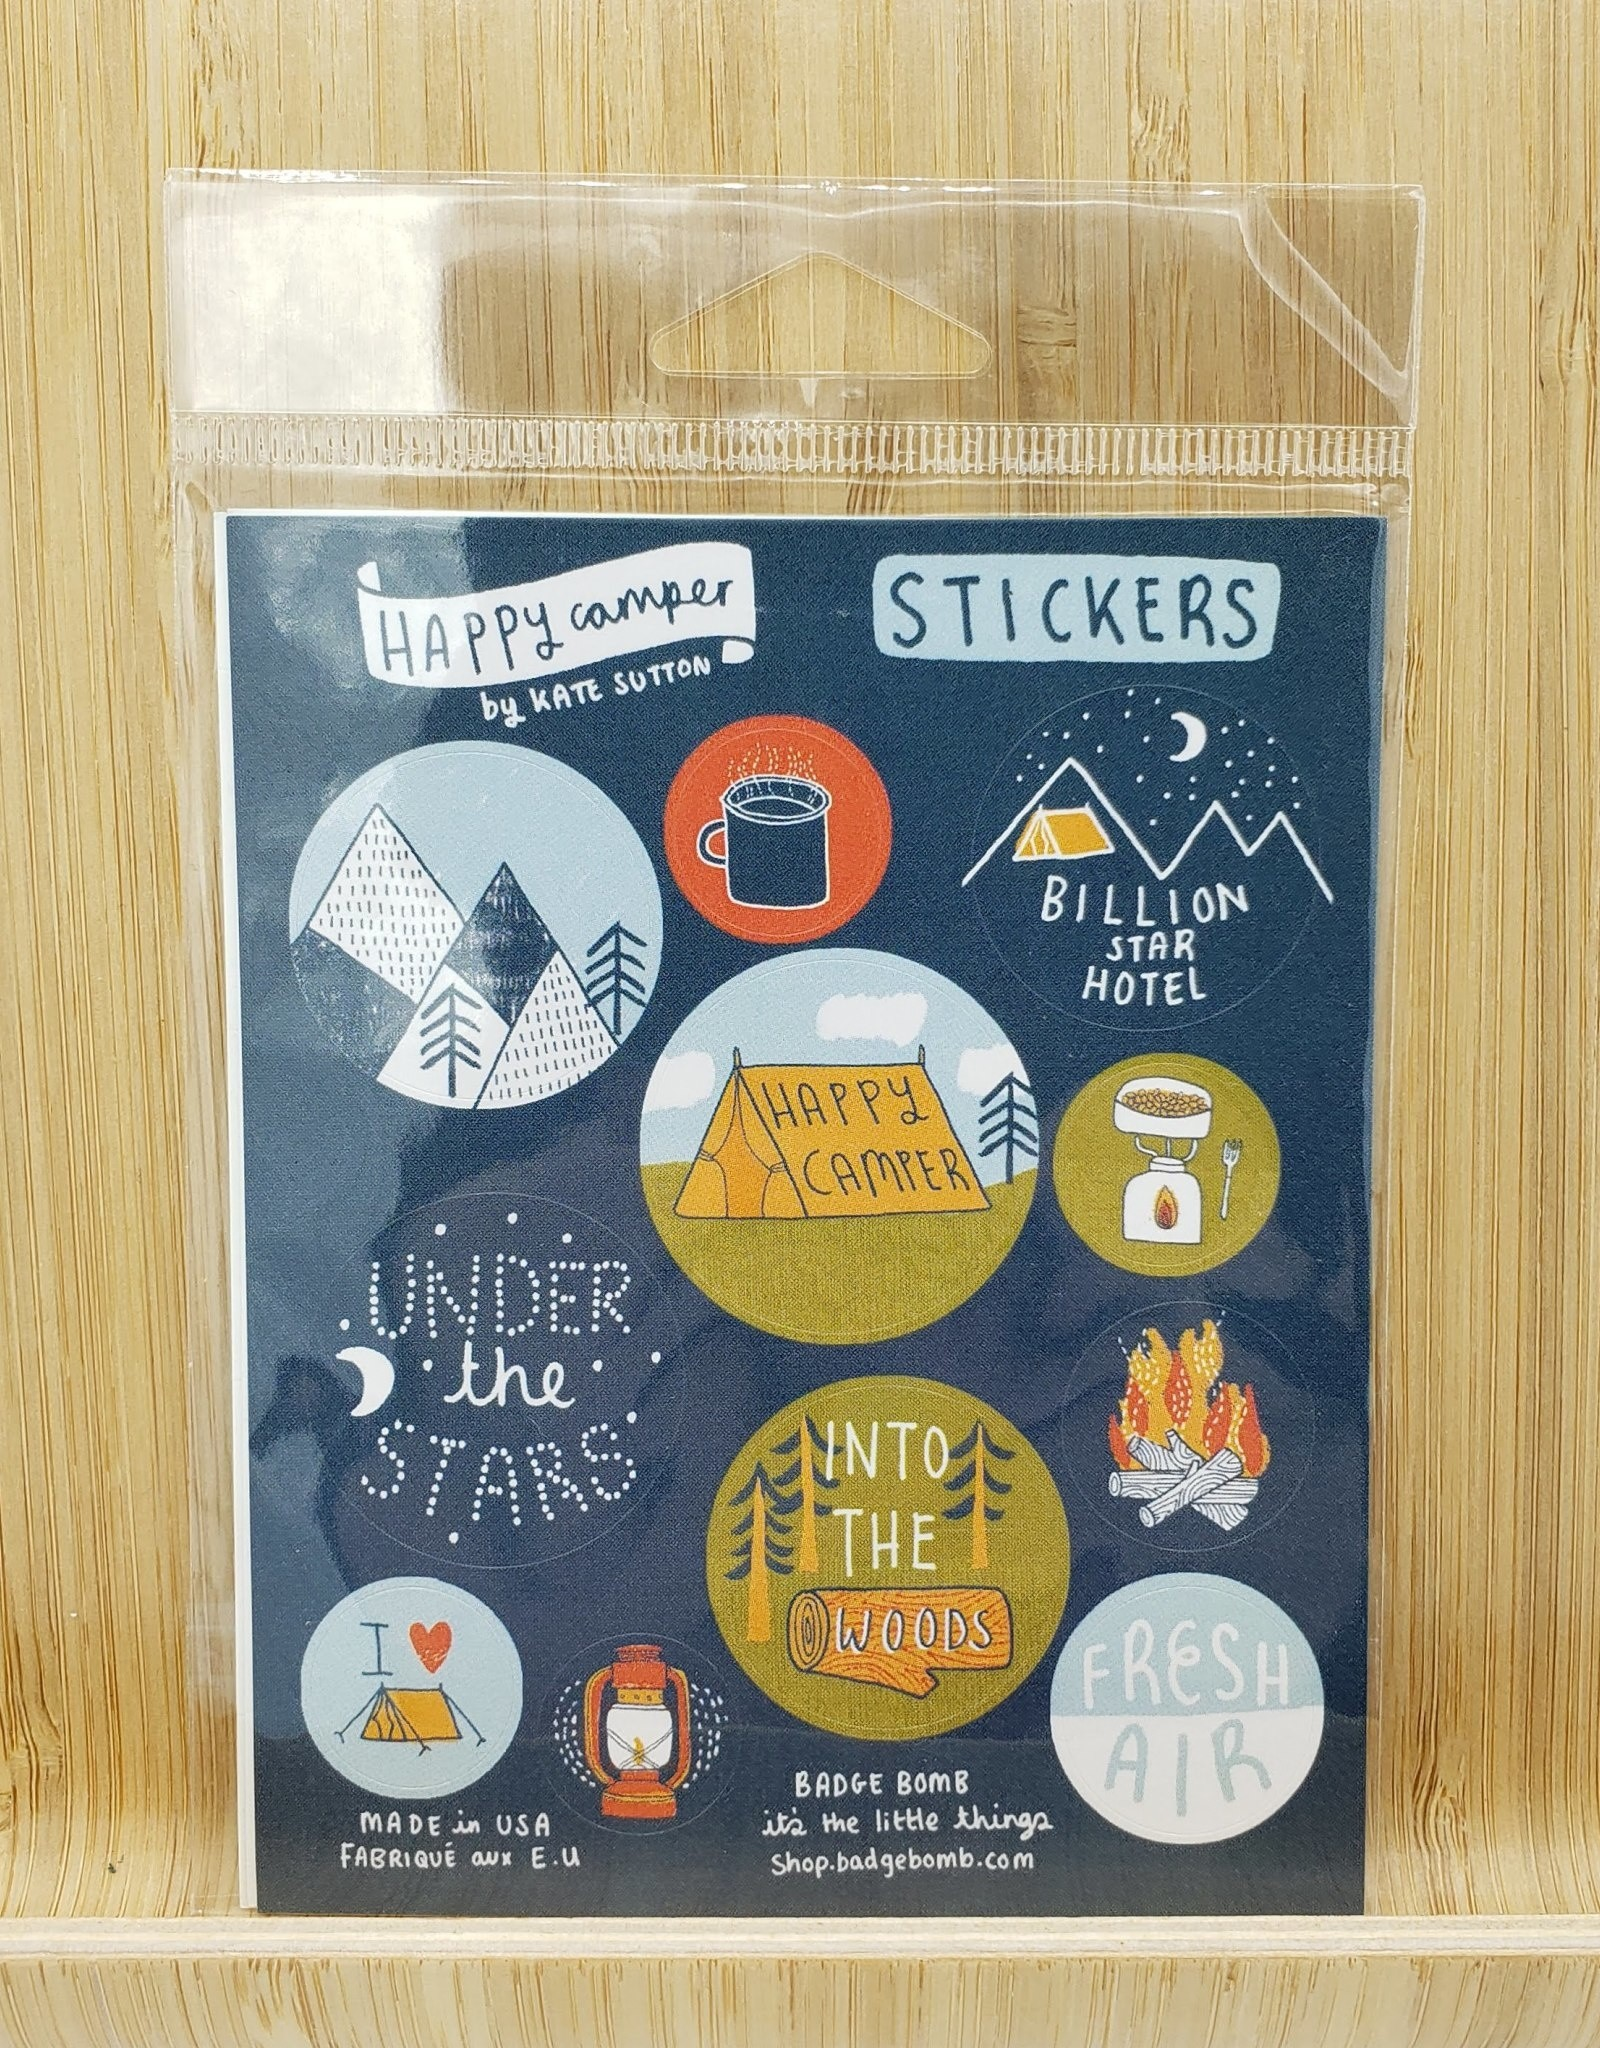 Badgebomb Happy Camper Gift Label Sticker Sheets -3 per pack by Kate Sutton